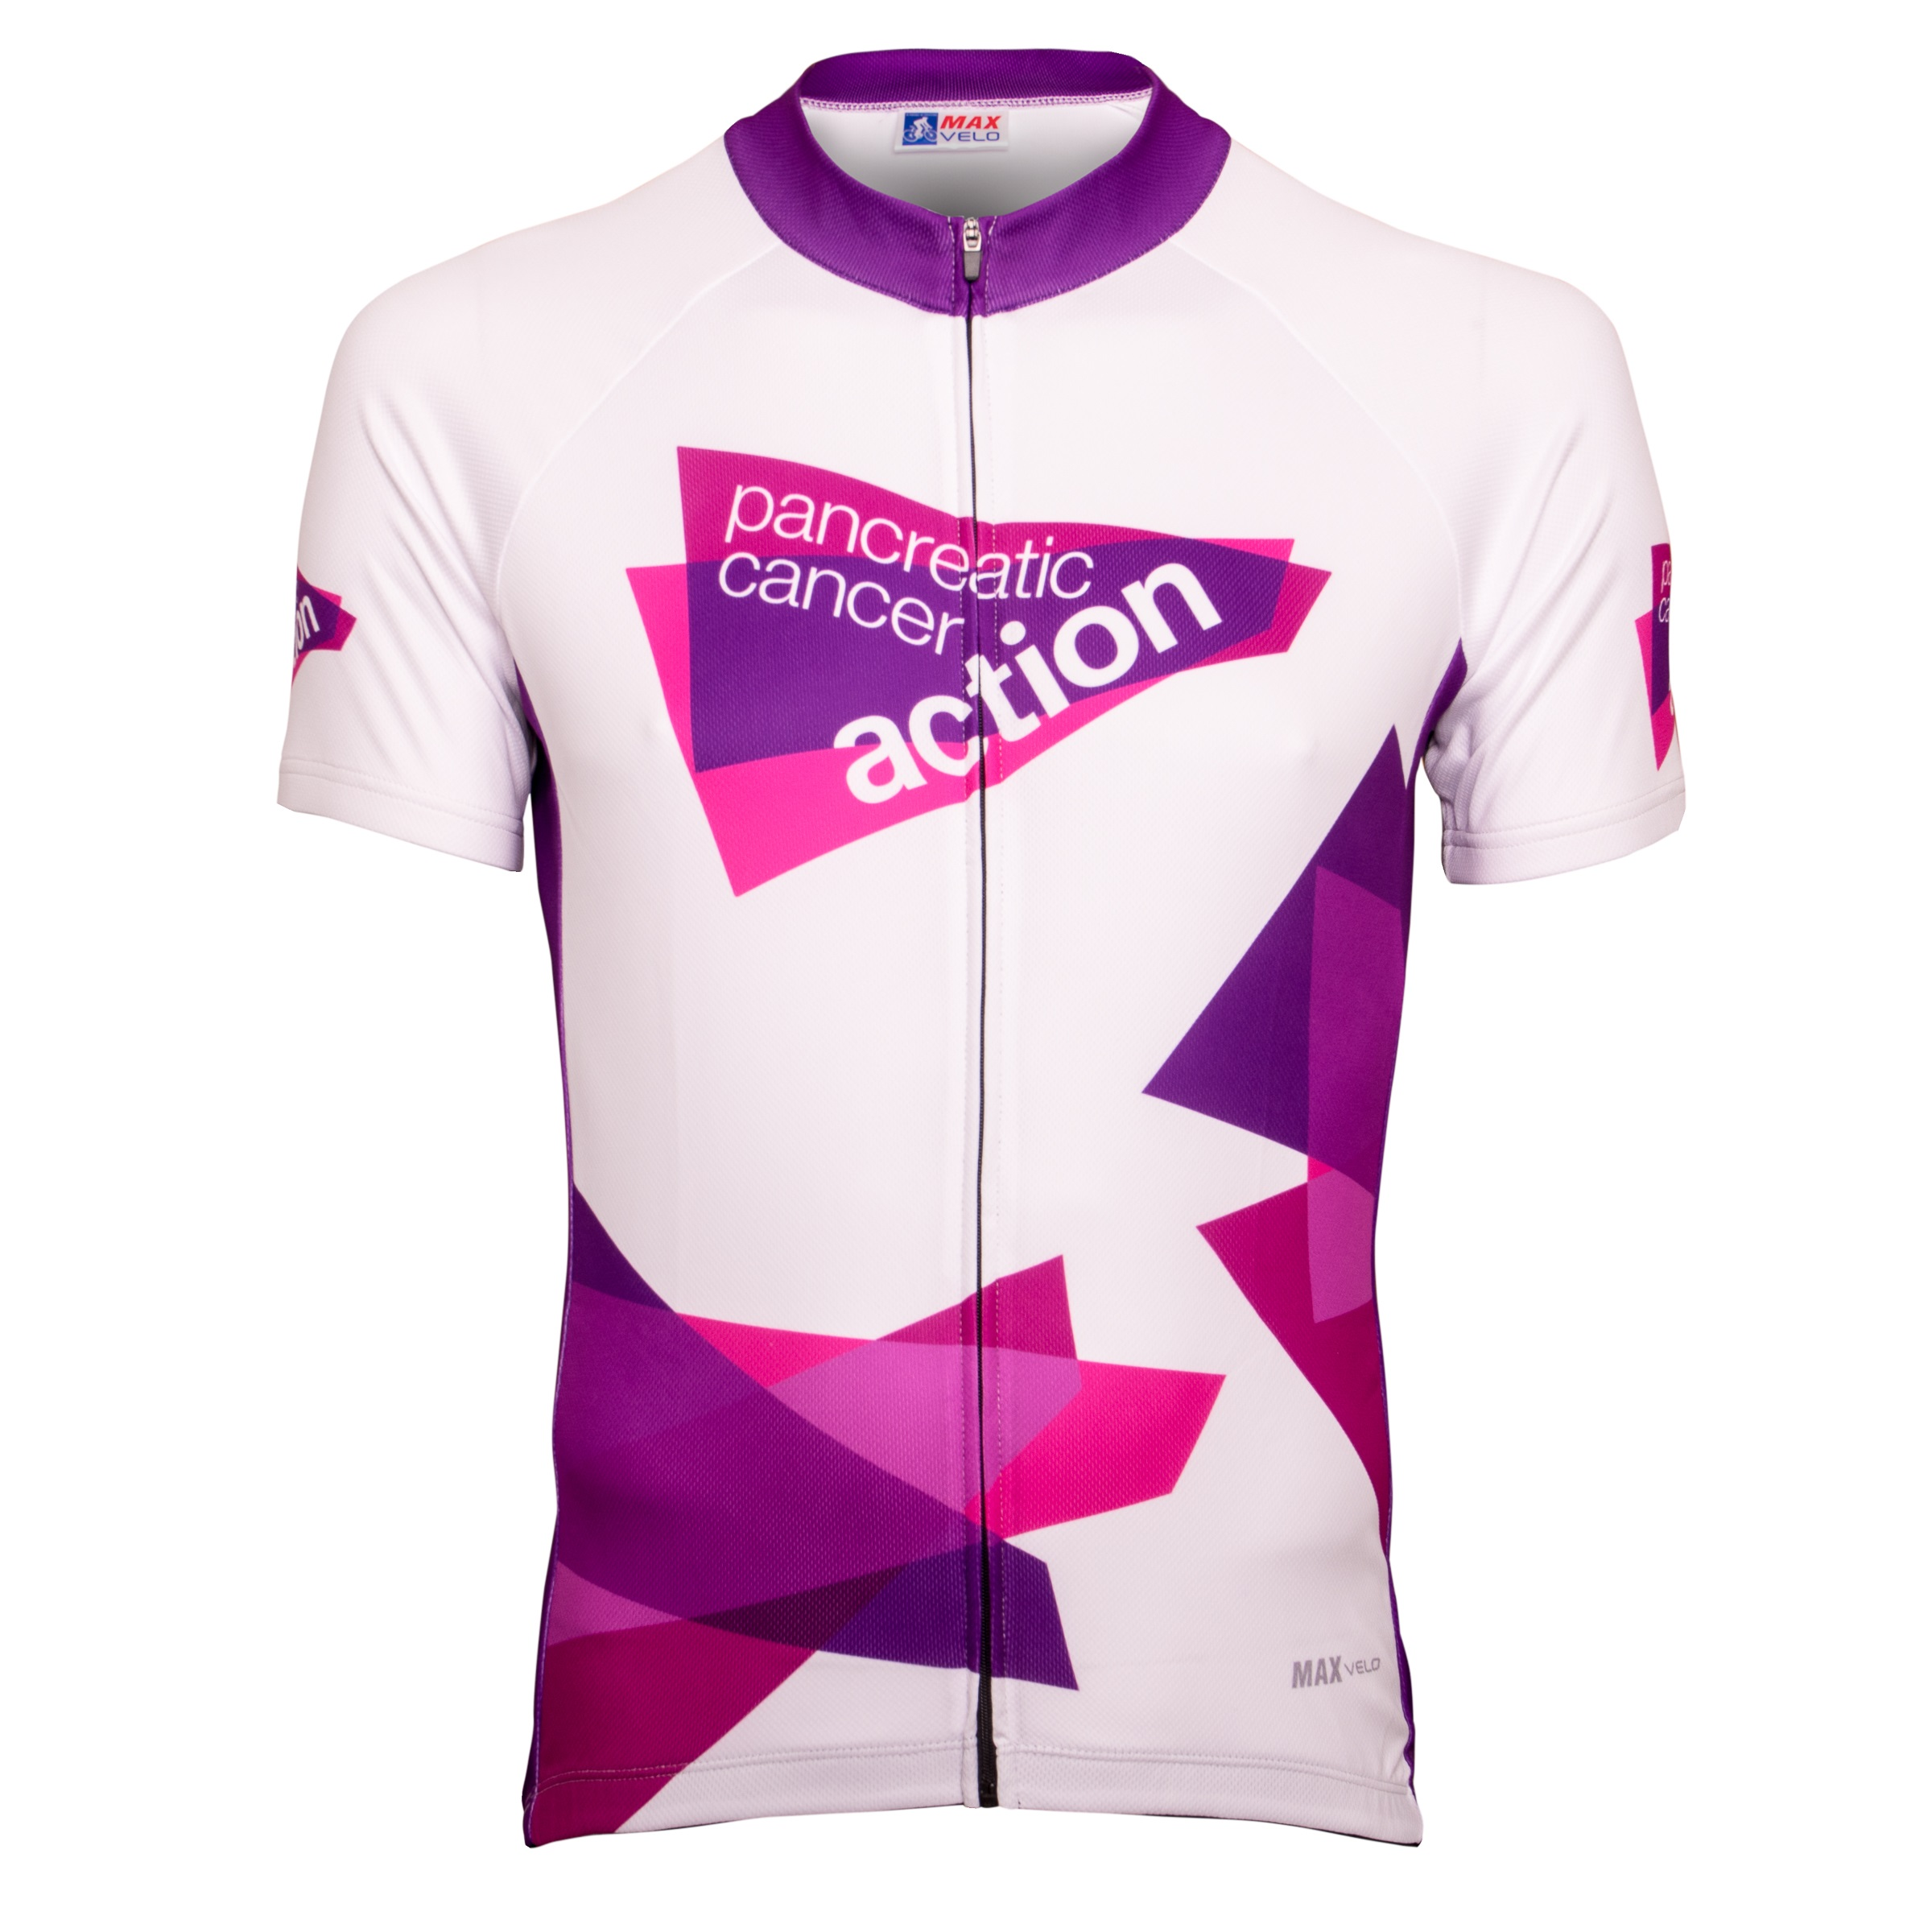 Cycle Jerseys Pancreatic Cancer Action